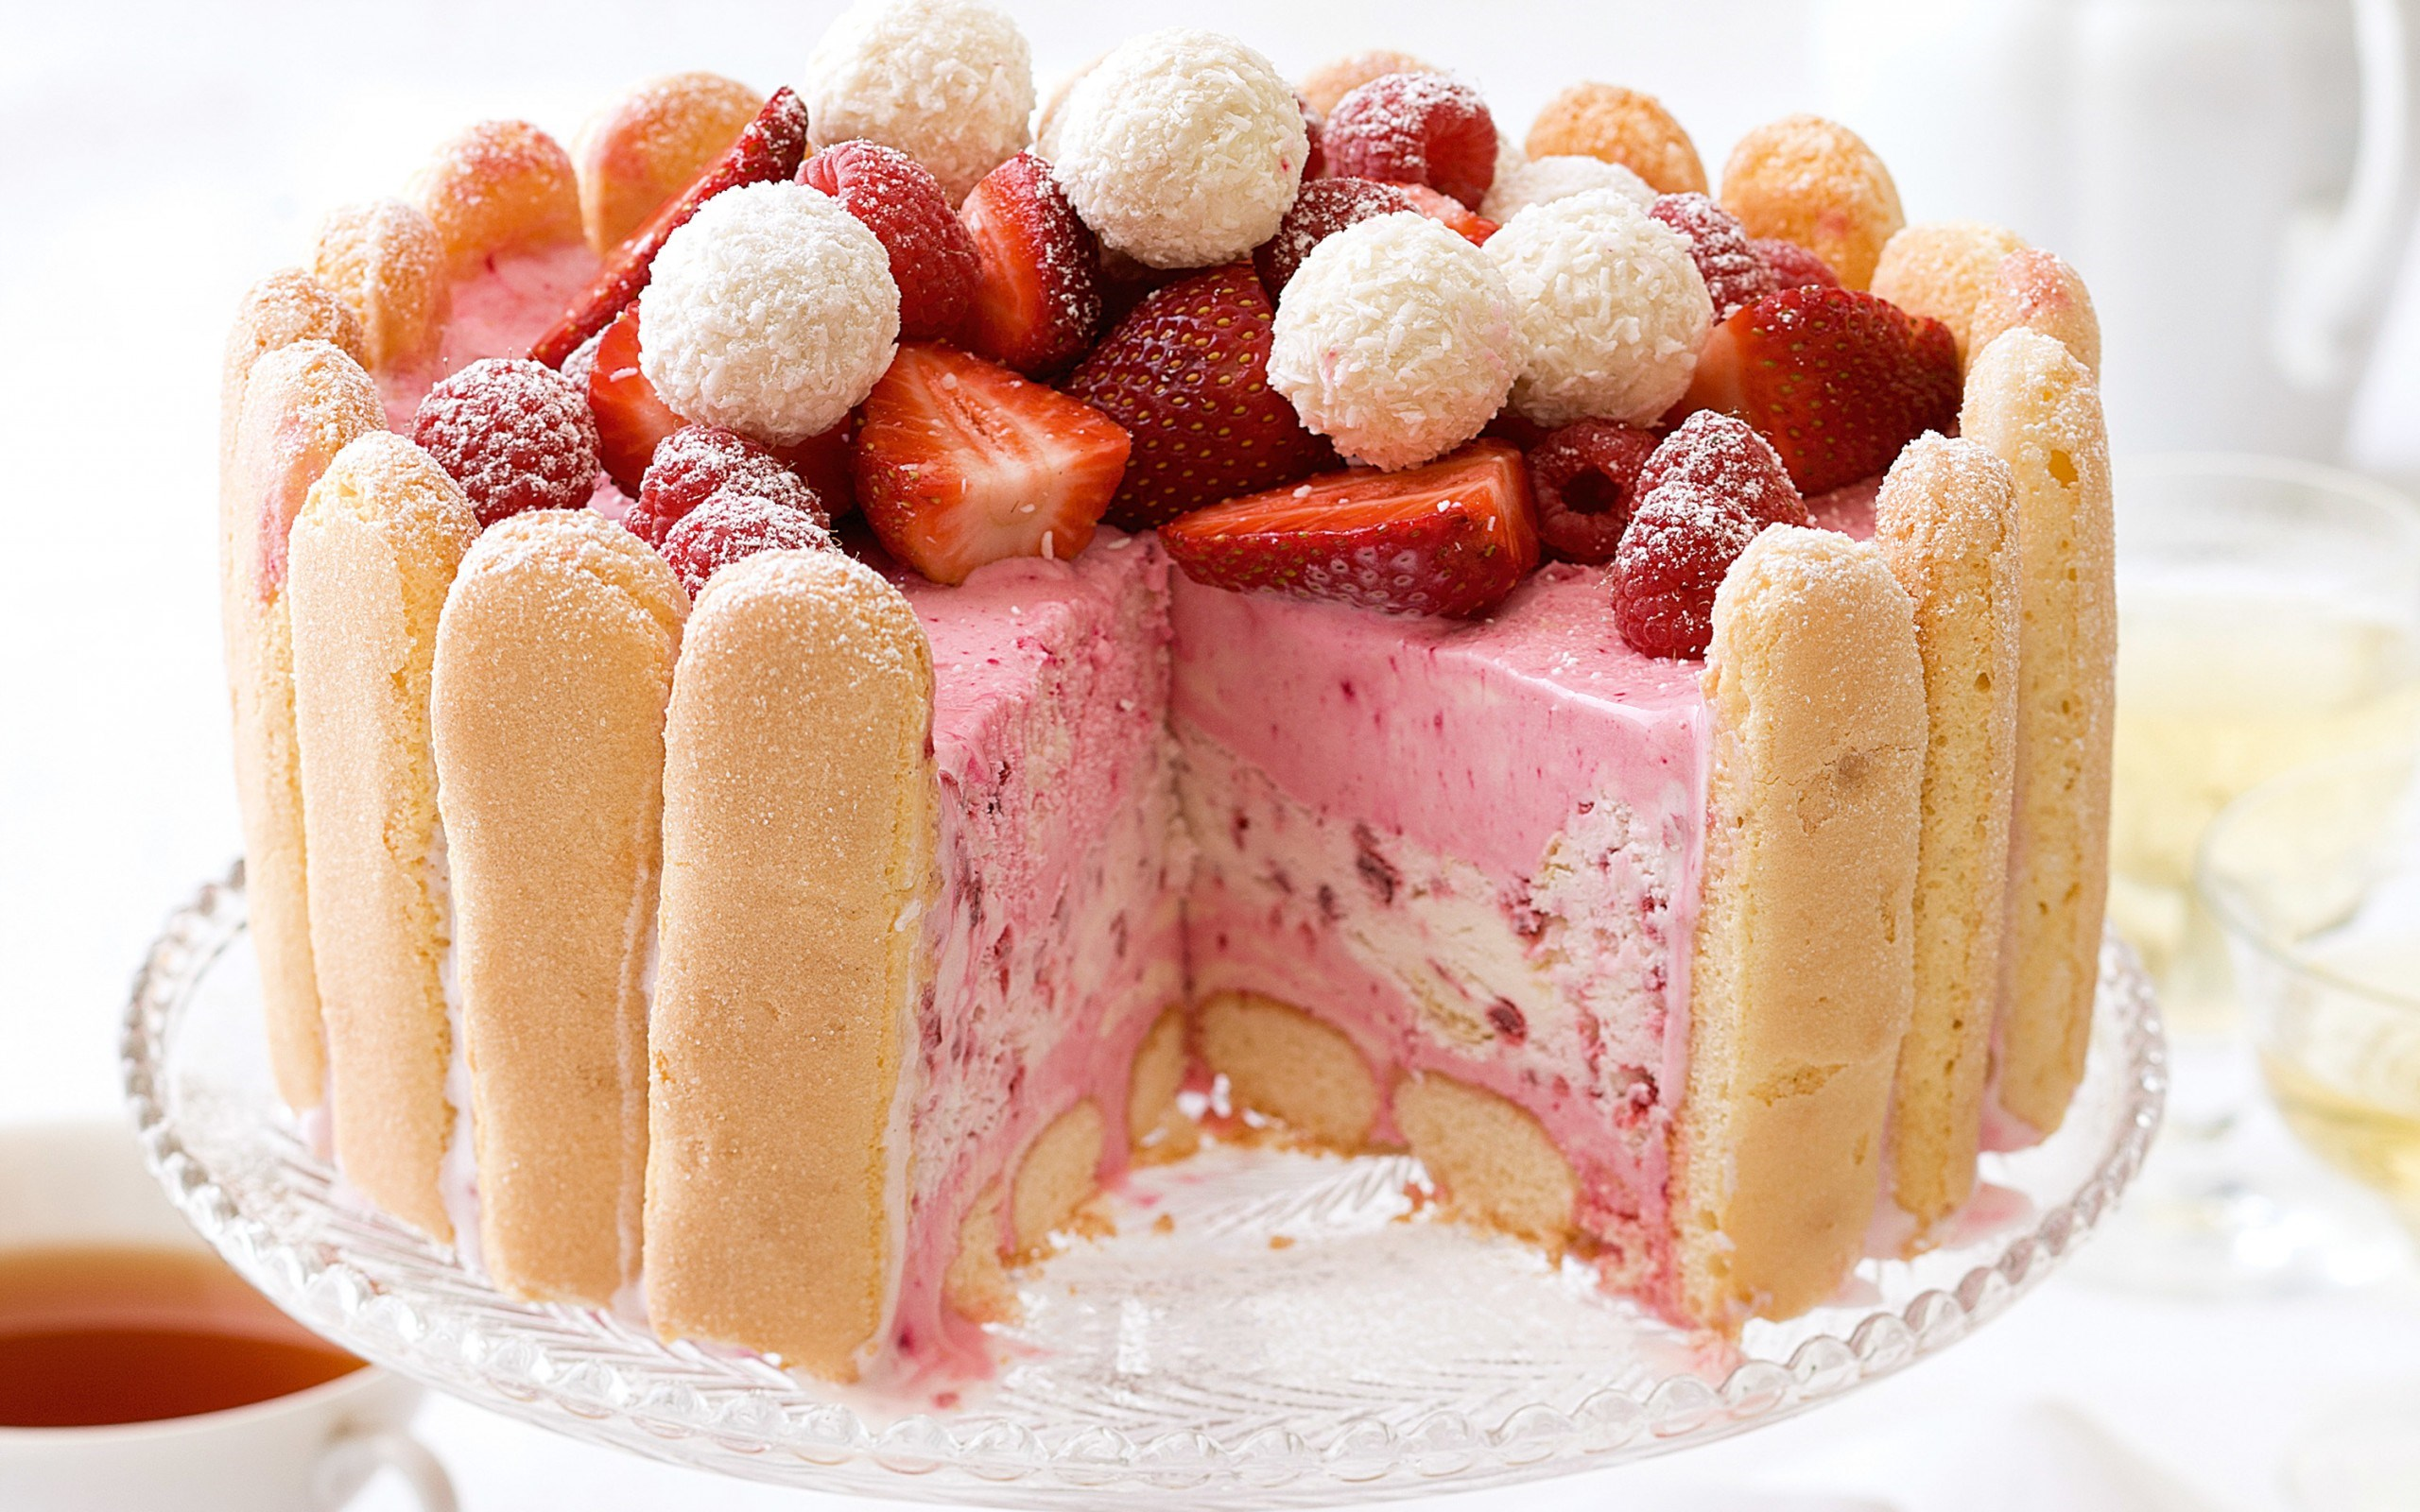 Cake Strawberries Berries Dessert Sweet